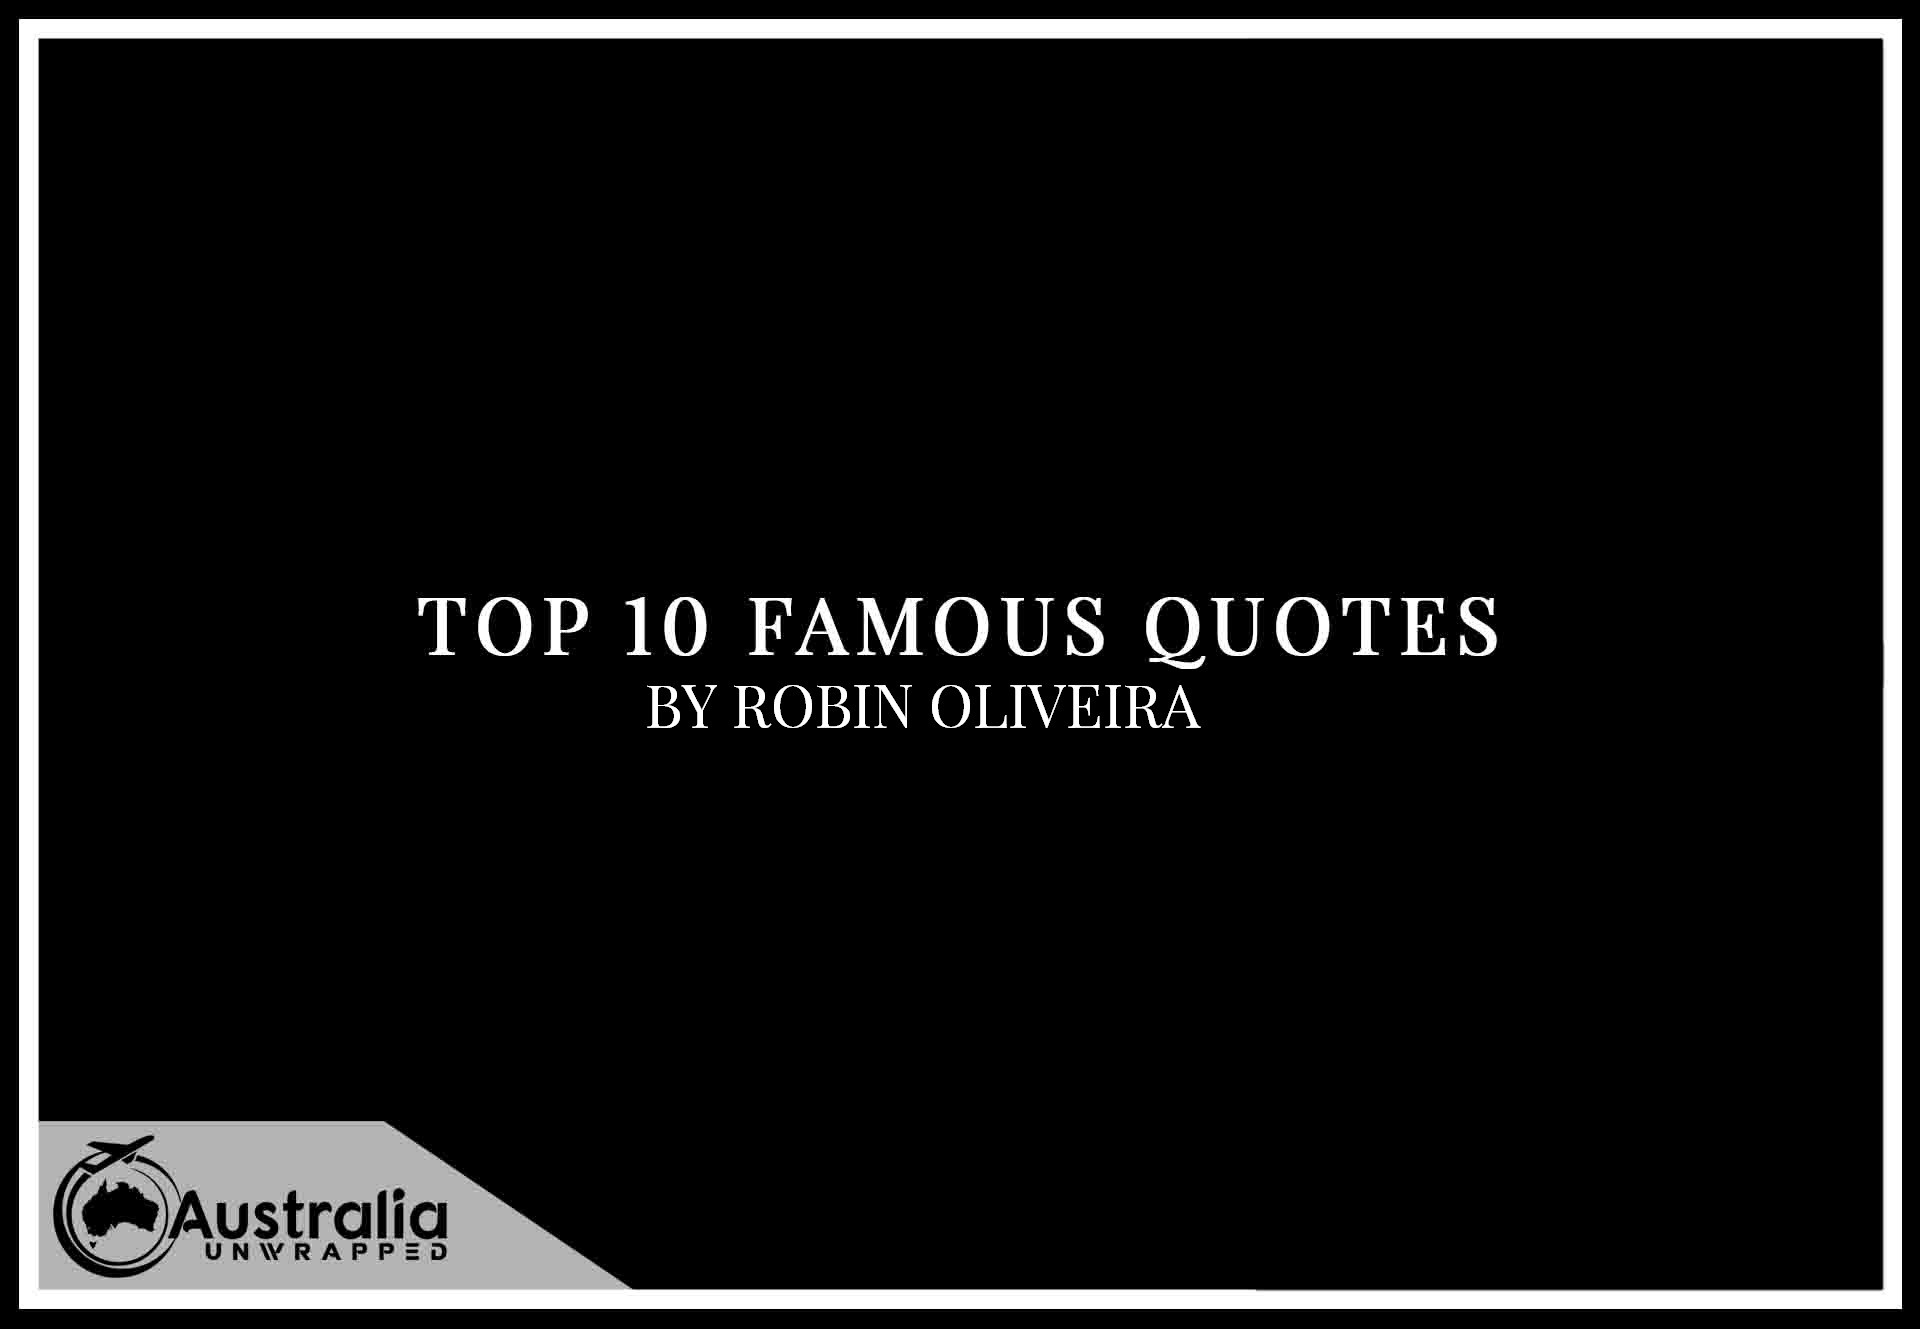 Robin Oliveira's Top 10 Popular and Famous Quotes